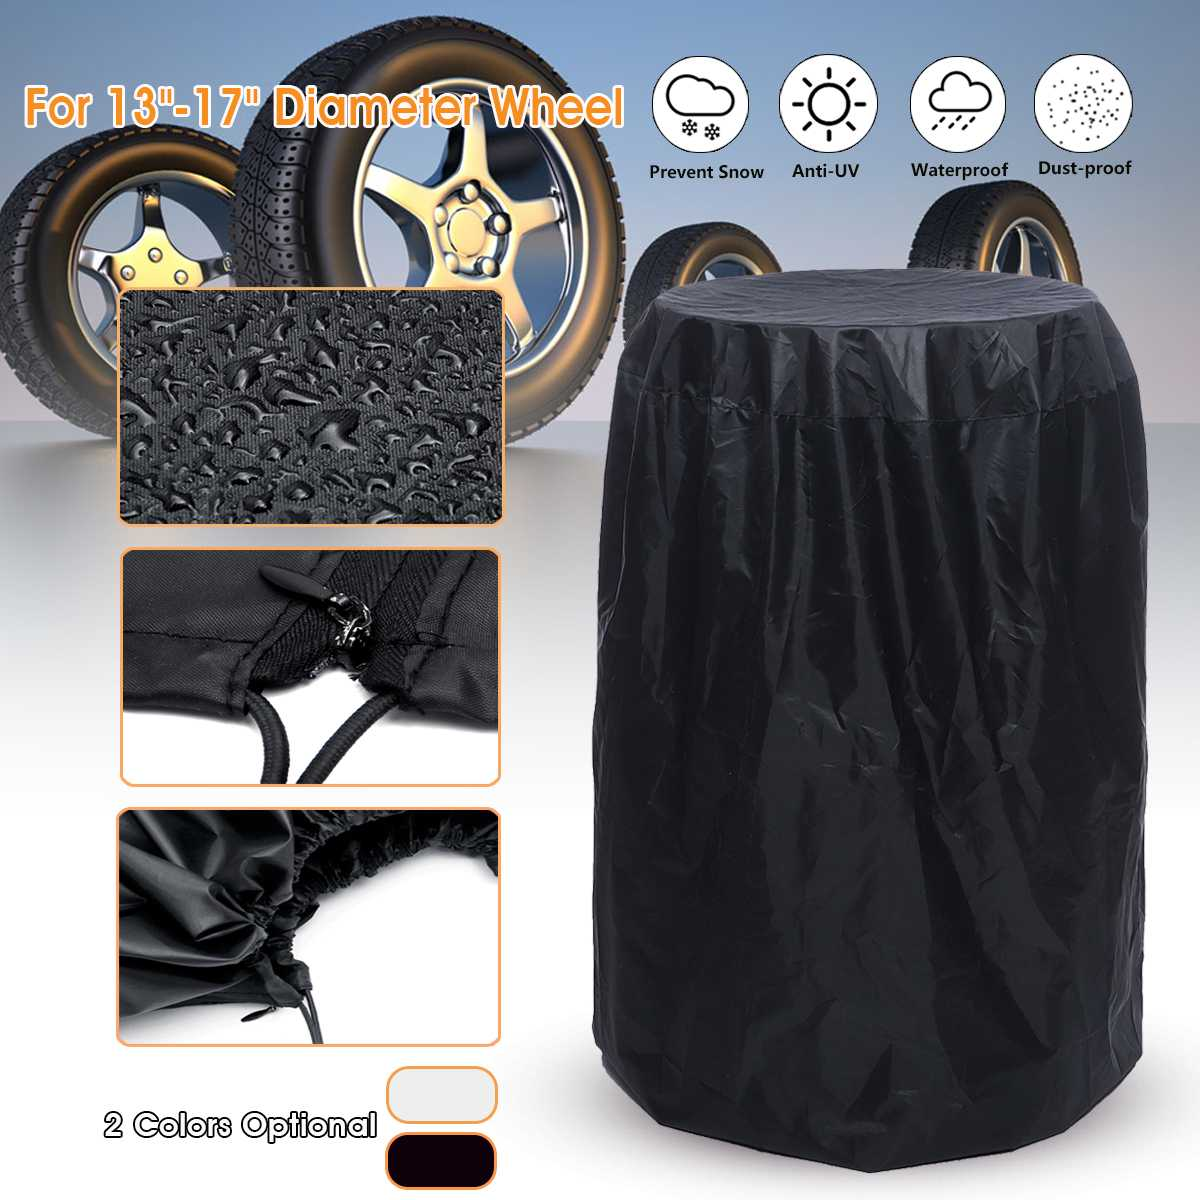 13-17 Diameter Car Tire Cover Spare Wheel Covers Protection with Storage Bag for RV Trailer Truck Waterproof13-17 Diameter Car Tire Cover Spare Wheel Covers Protection with Storage Bag for RV Trailer Truck Waterproof